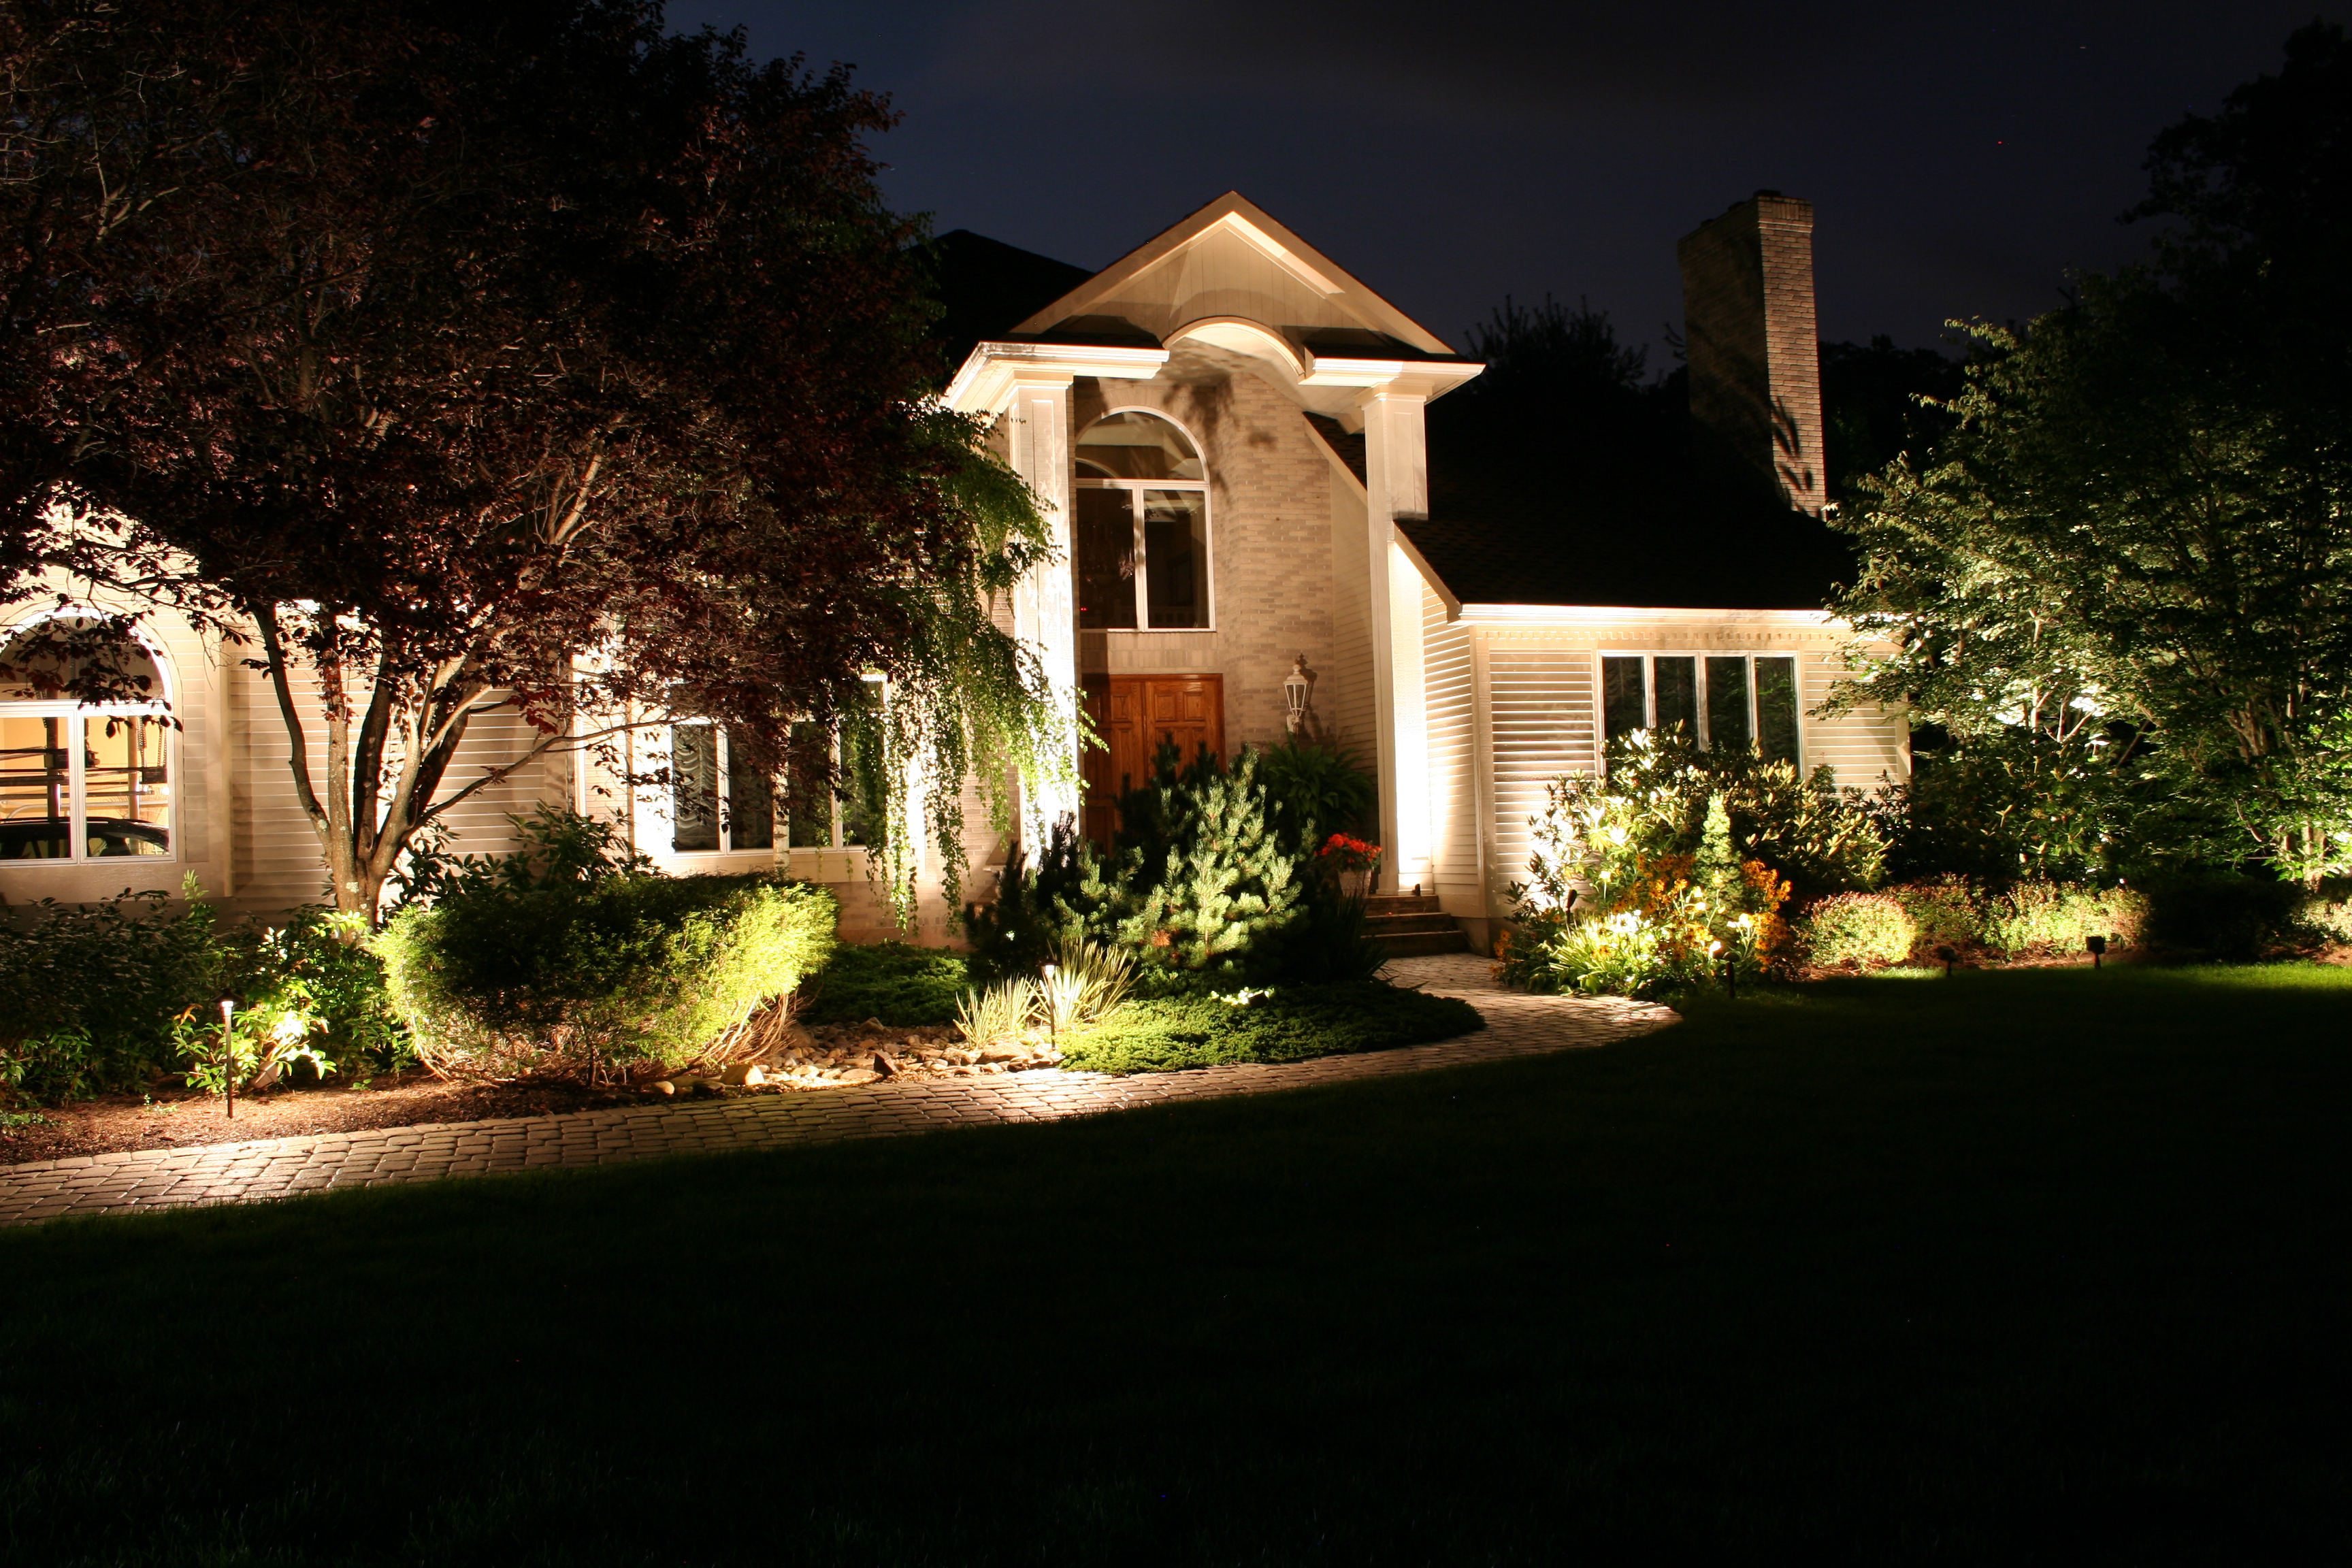 Preferred Properties Landscape lighting designer shows us ...